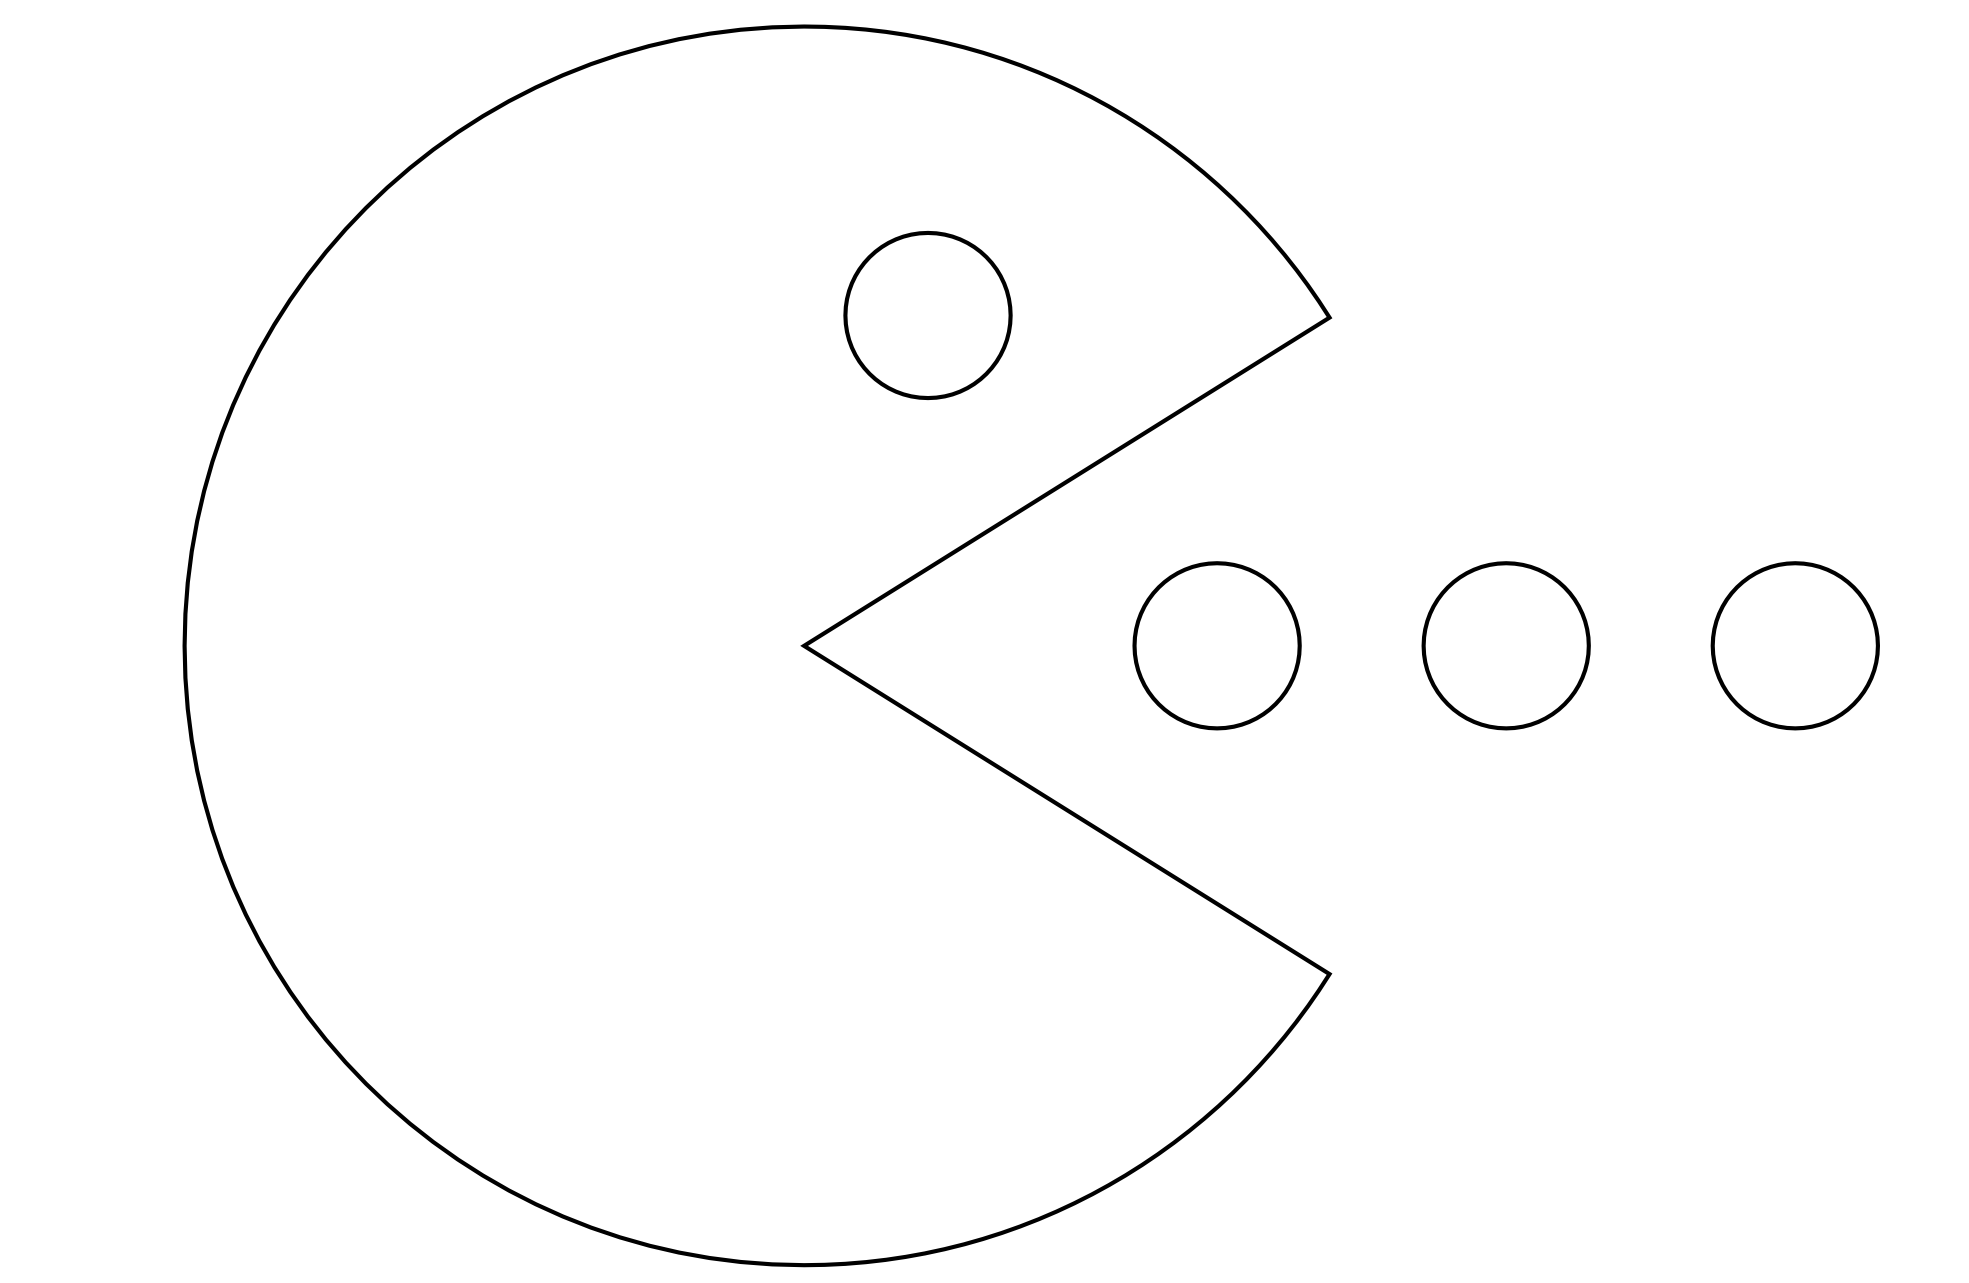 Mango clipart pac man.  collection of pacman